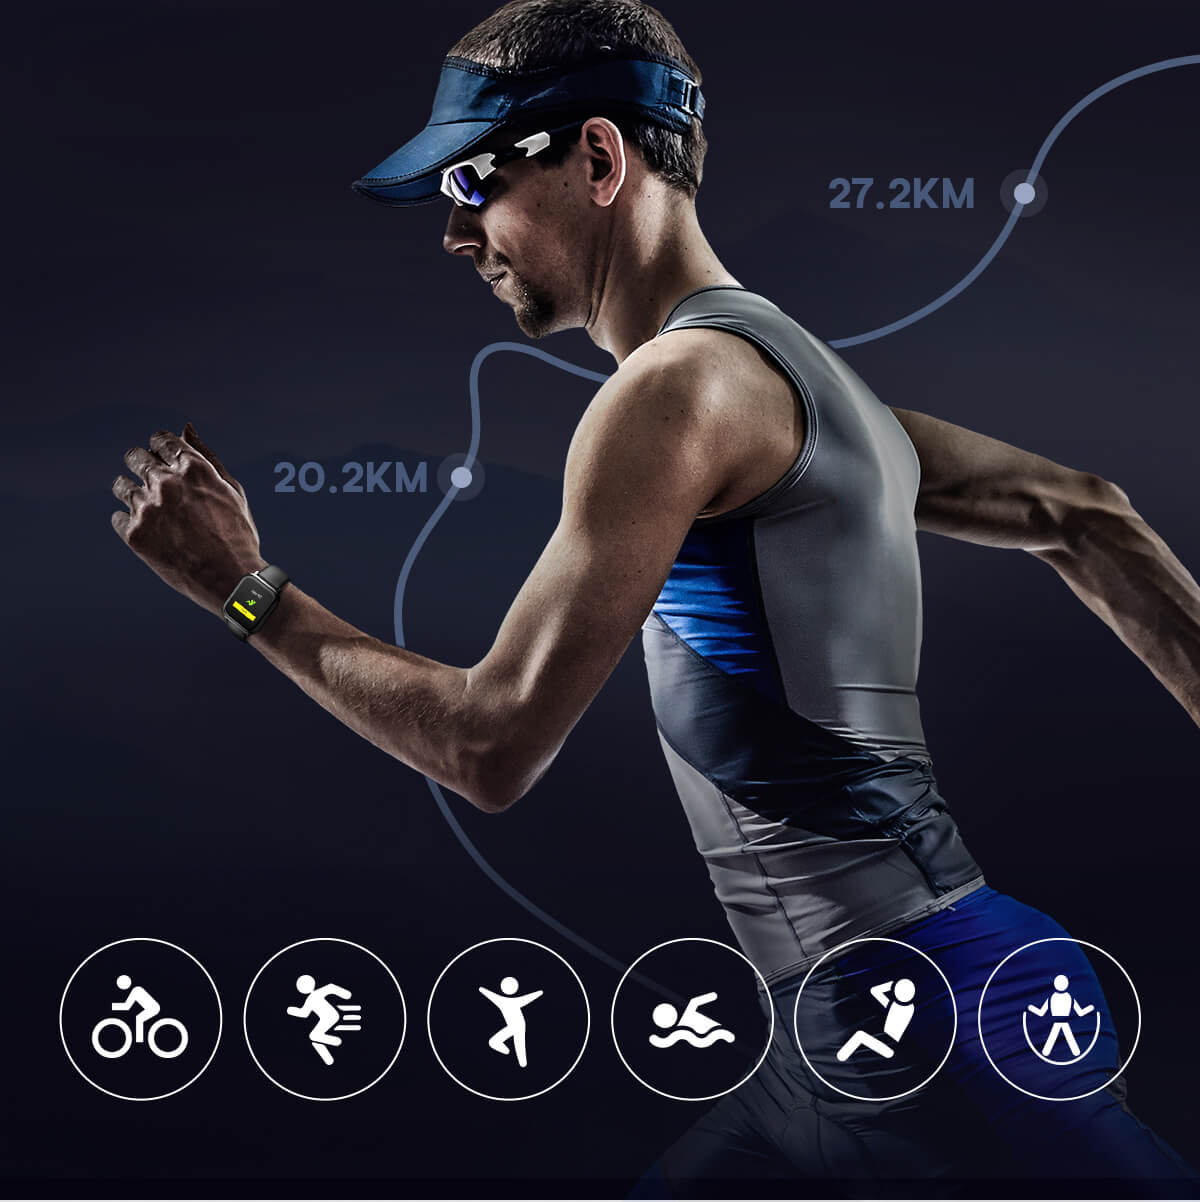 holyhigh-fitness-tracker-smart-watch-cs201-details-2